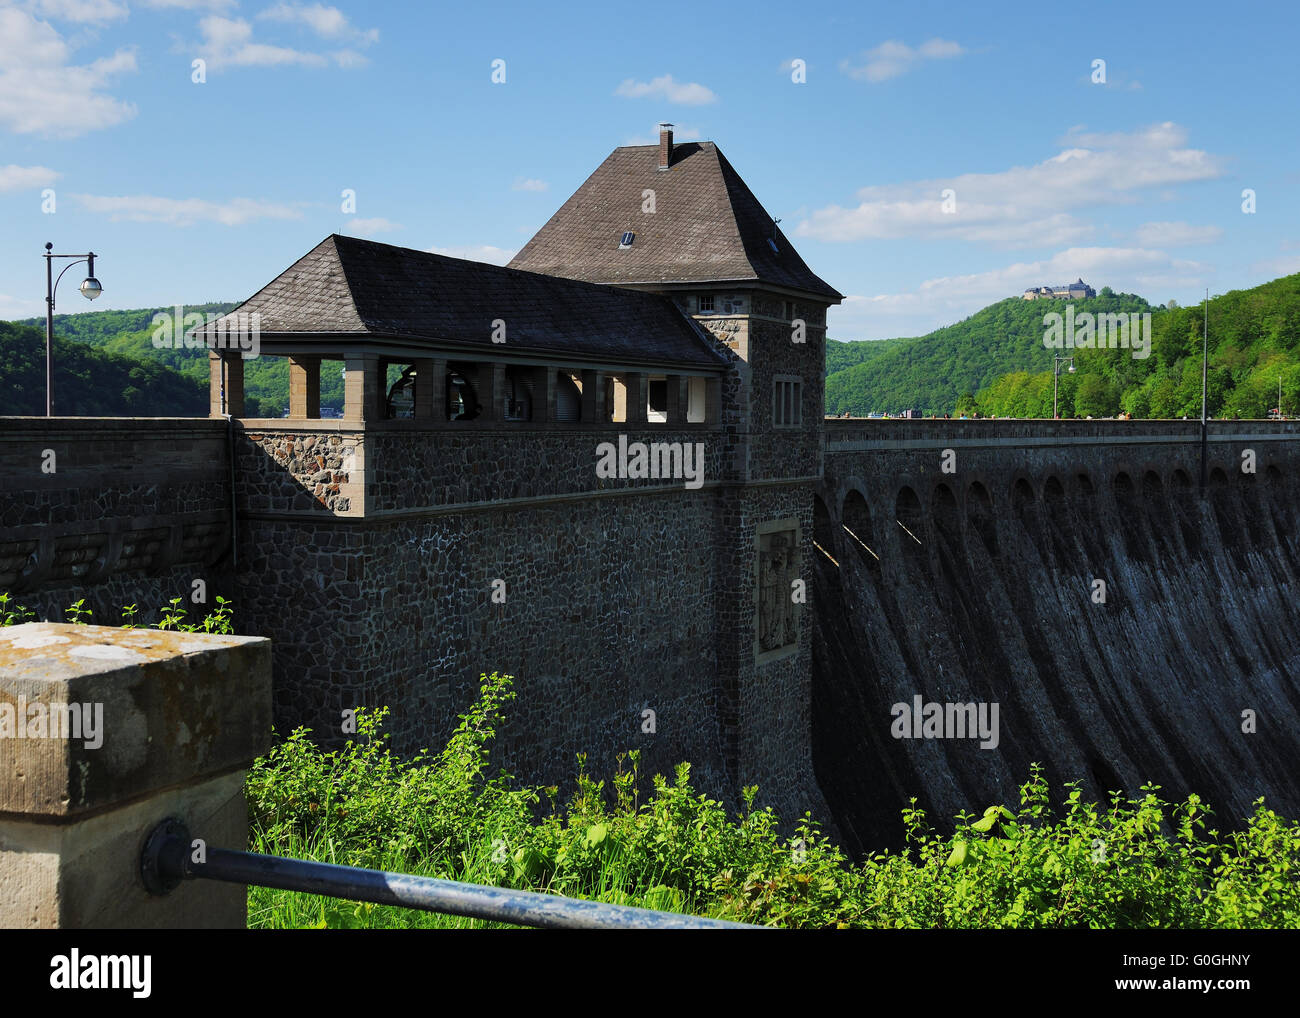 Dam of the ederlake with Castle Waldeck - Stock Image